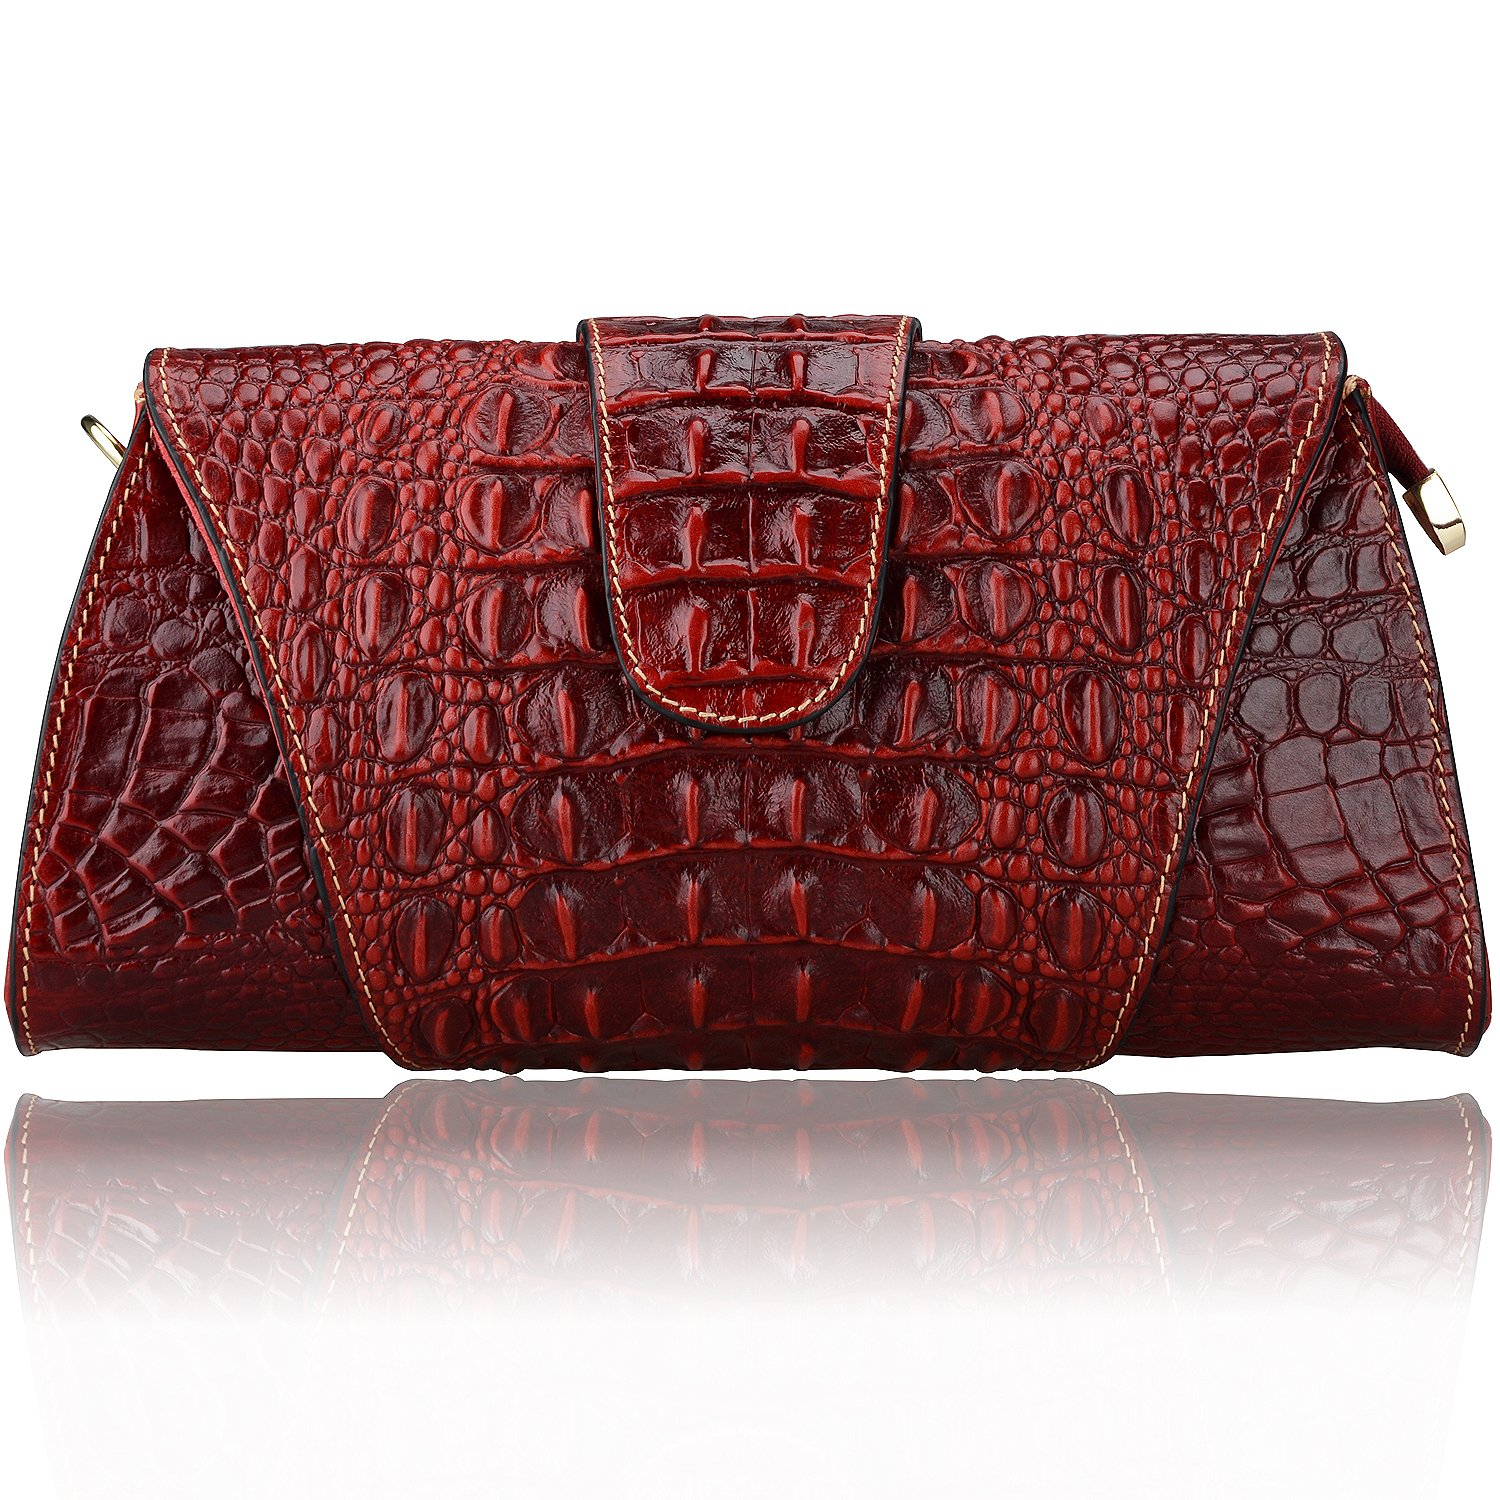 Pijushi Croco Embossed Leather Clutch Bag Cross Body Handbag 8062 (One Size, Red)